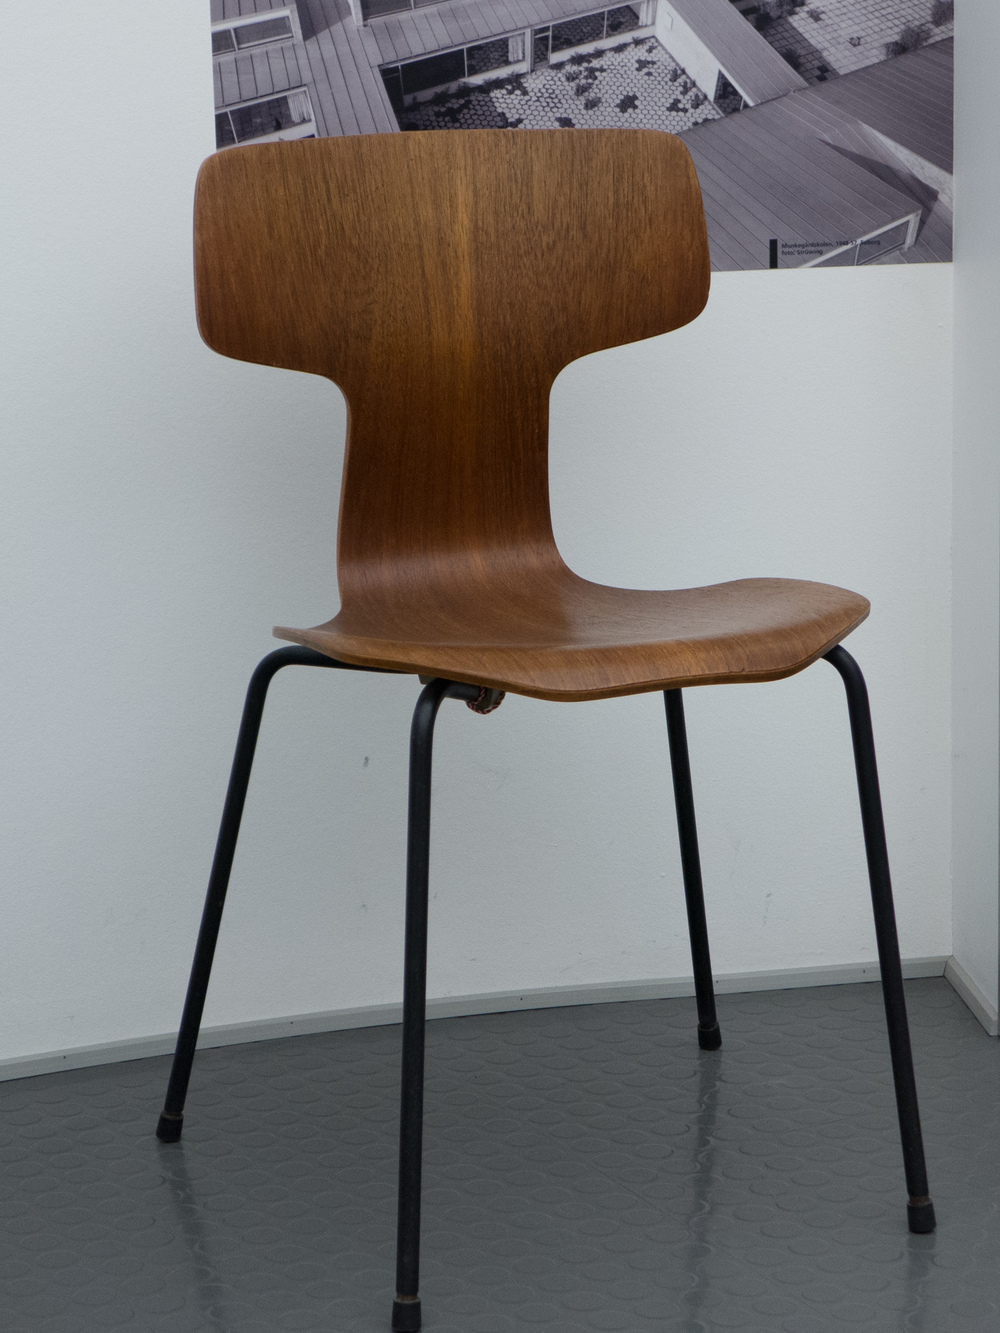 Plywood Chairs By Arne Jacobsen Danish Design Review